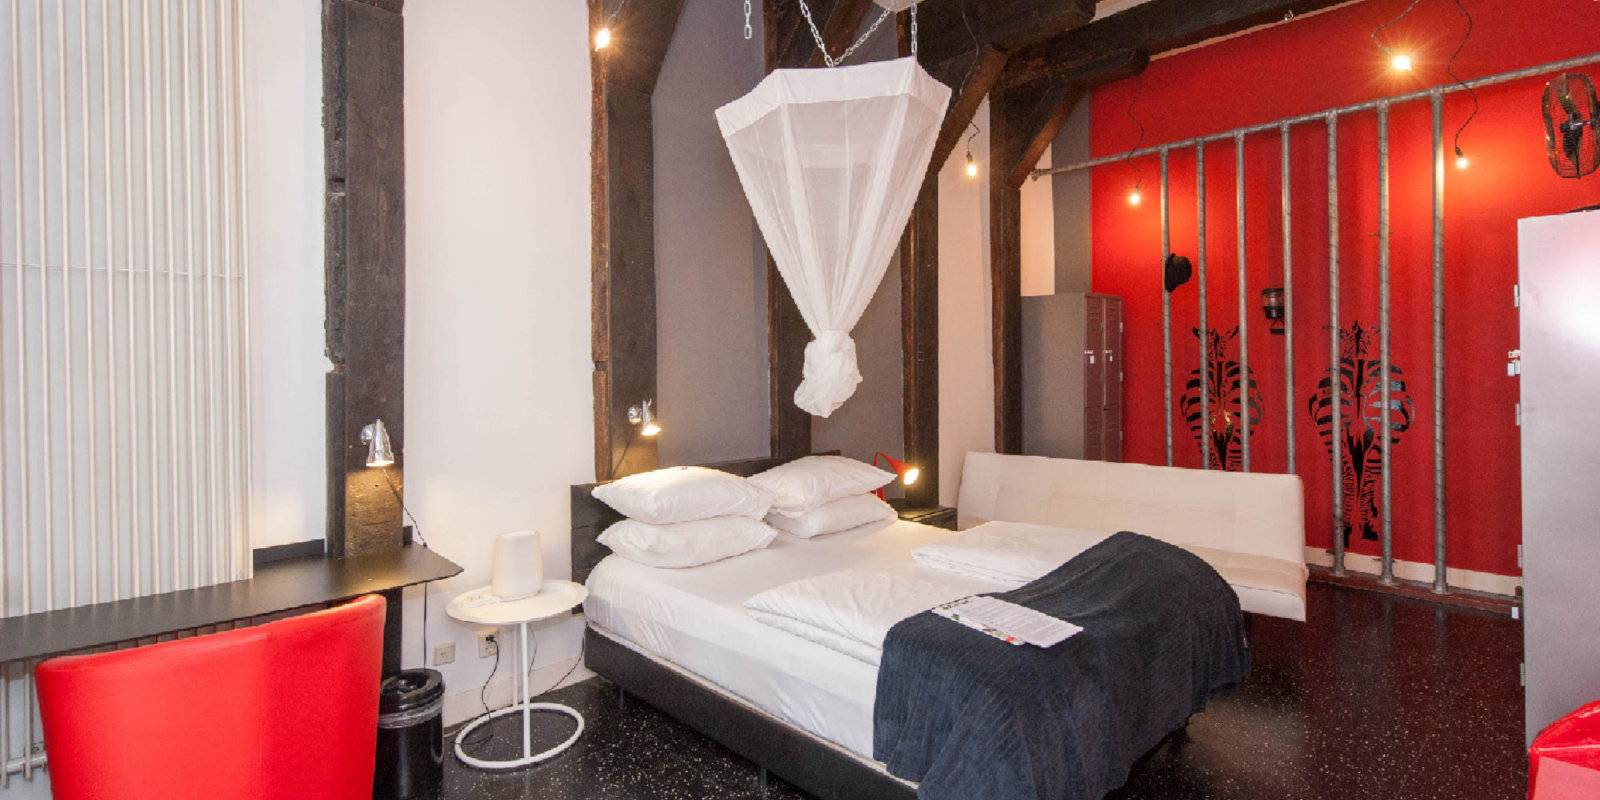 Gay hotels in Amsterdam - Mauro Mansion is a hip hotel with lots of fun features.